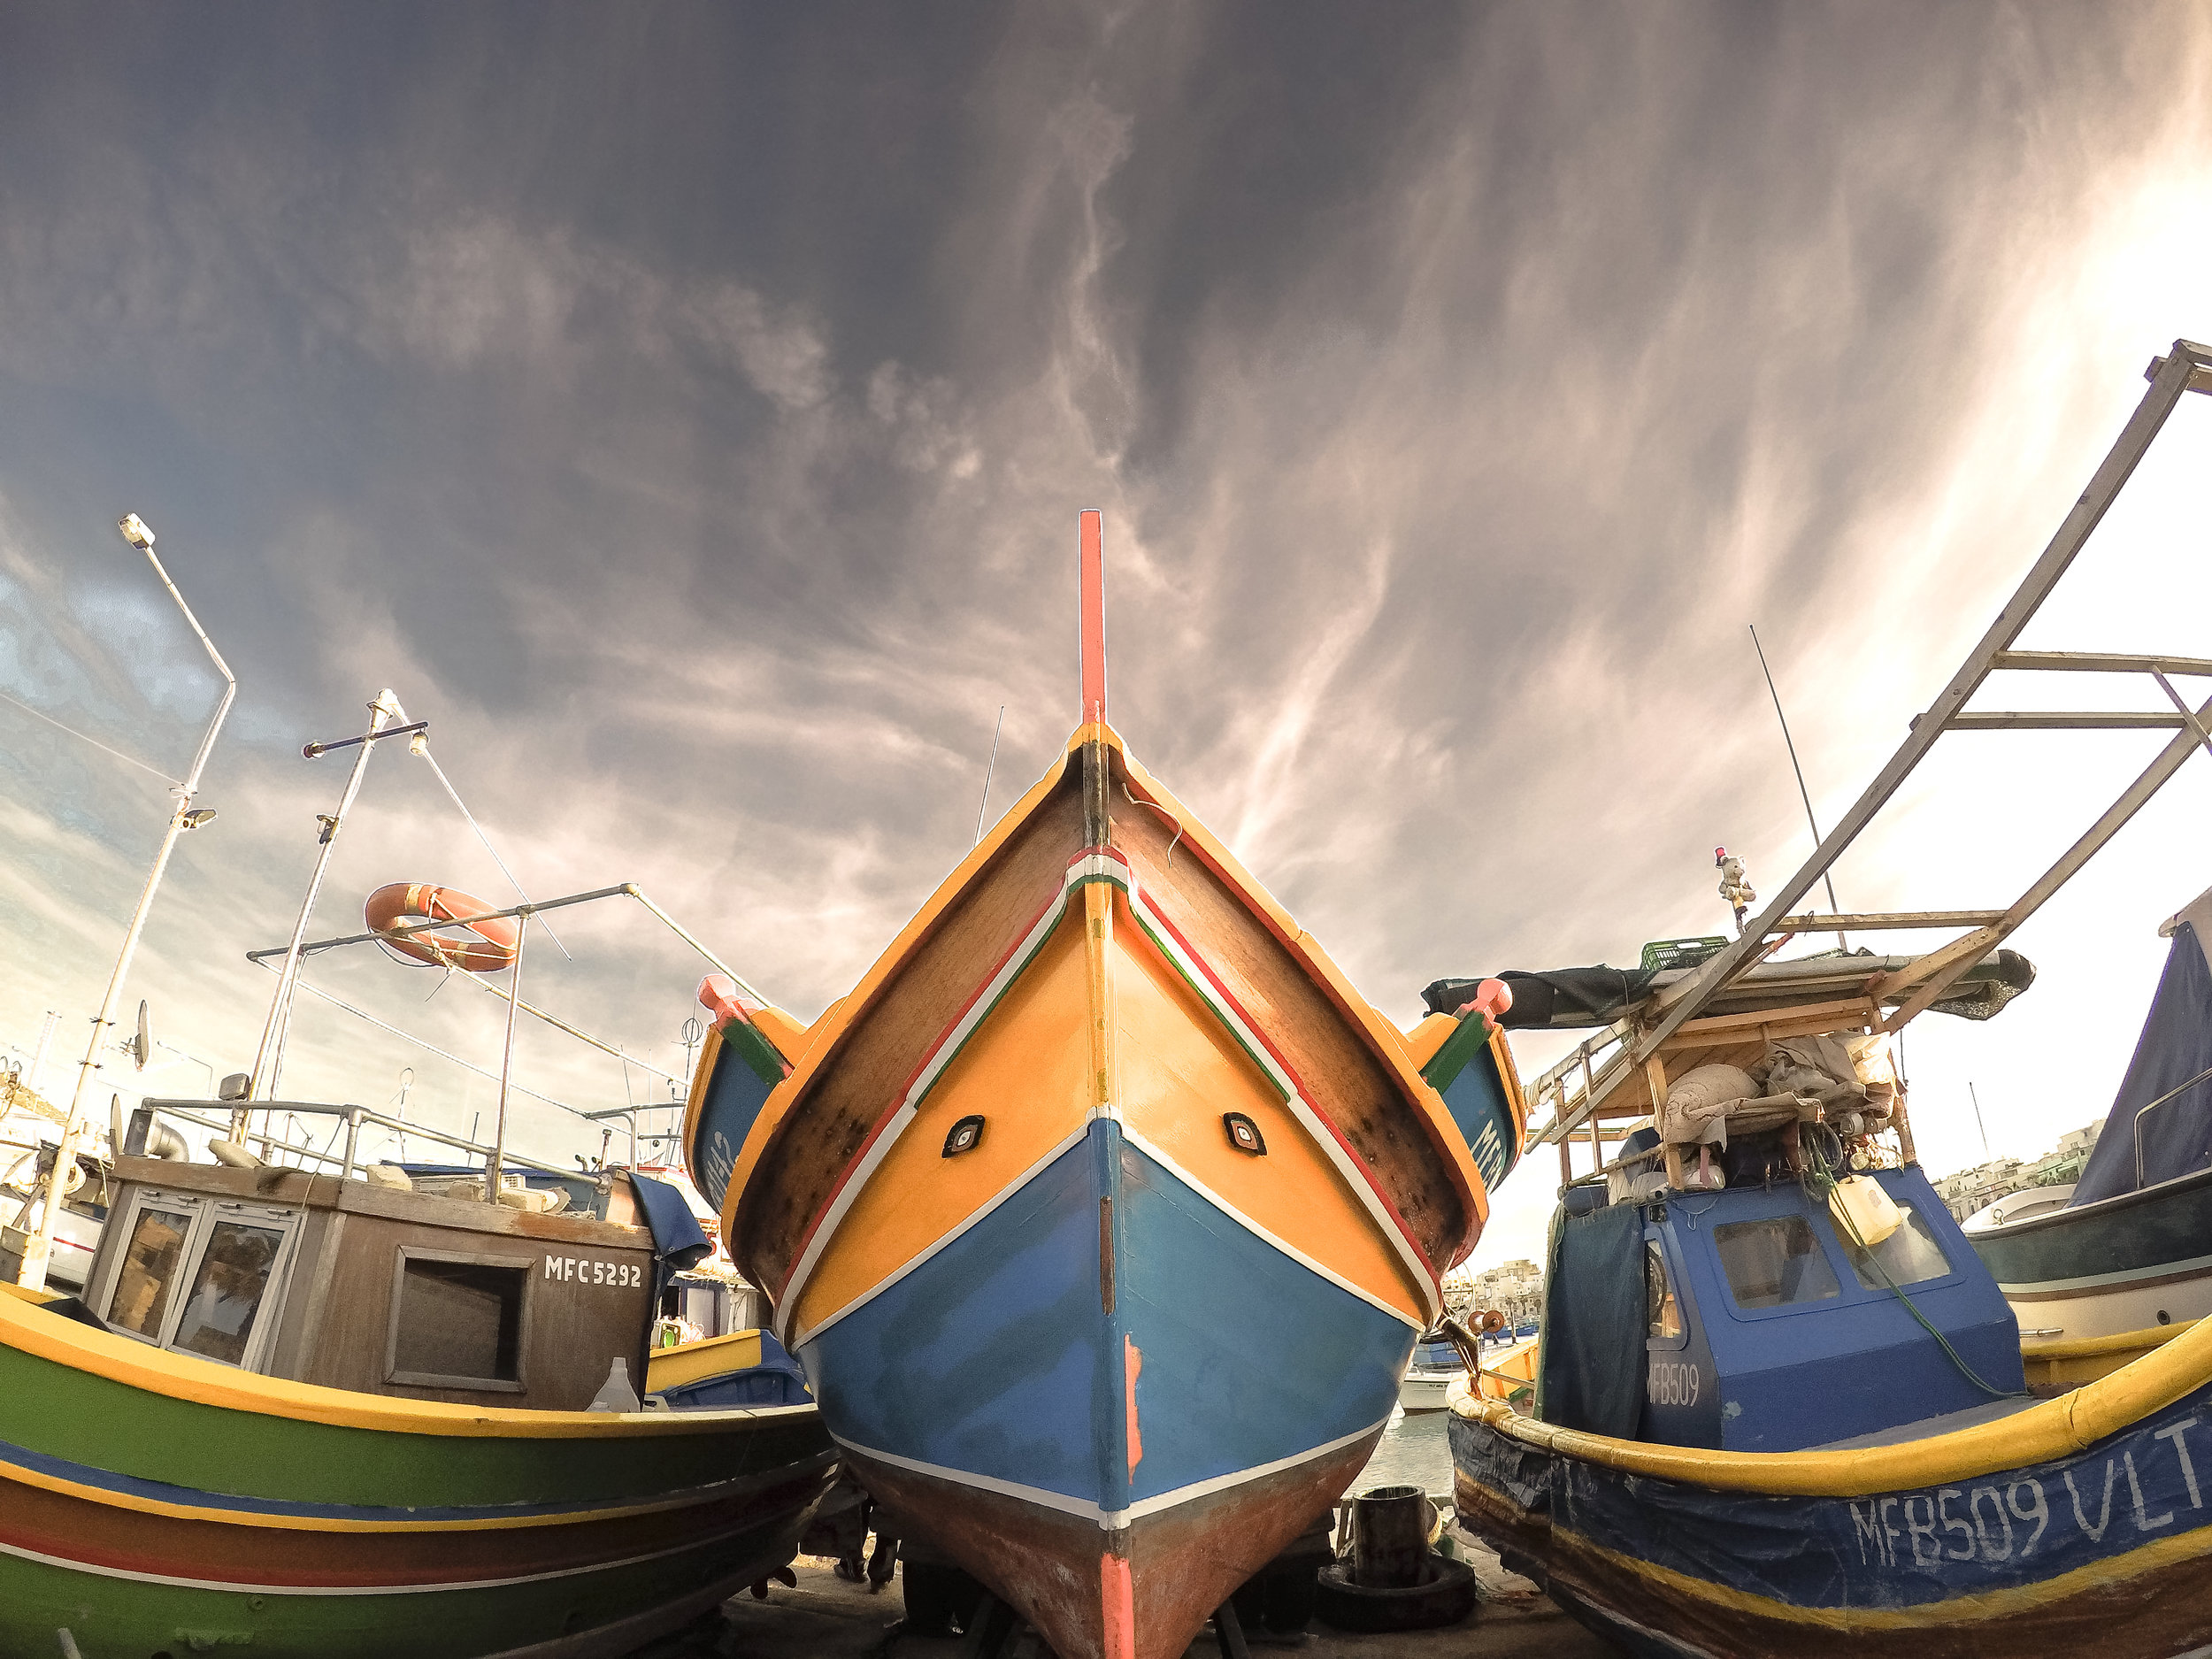 Maltese Boats | Traditional Fishing Village | Mediterranean Sea | Marsaxlokk - Thinking About Appreciation For Quality In Malta | Malta, Europe | DoLessGetMoreDone.com | - GoPro Minimal Travel Documentary Photography - search for Liveability | Sustainability